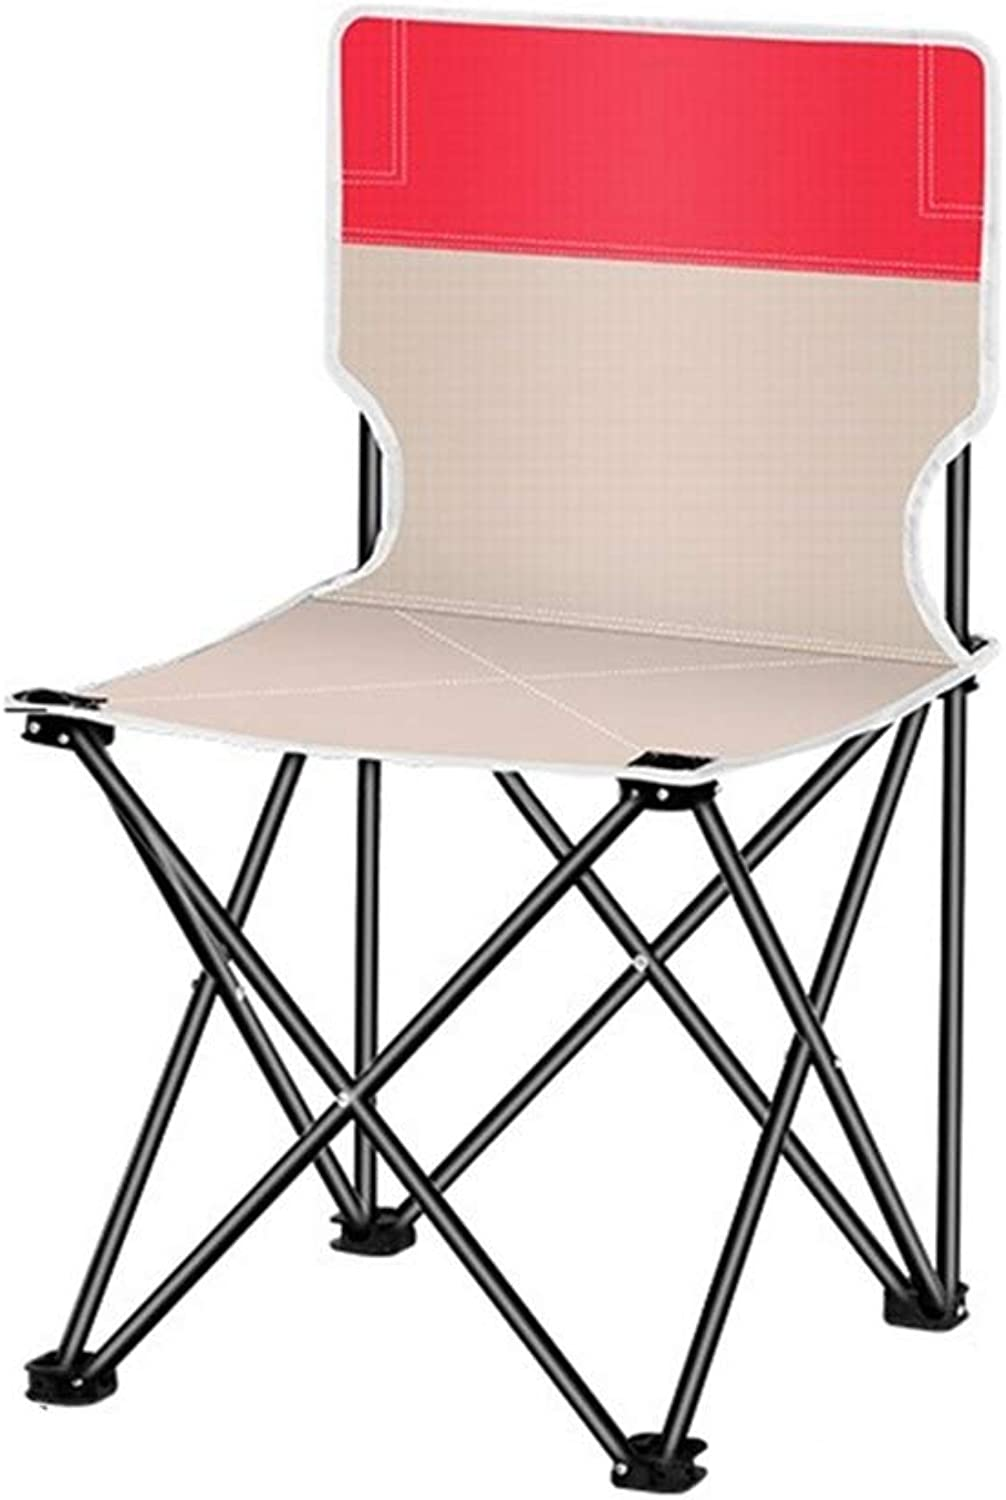 Director's Chair, Comfortable Durable Foldable Fishing Chair Portable Chair Easy to Store Stool Camping Chair